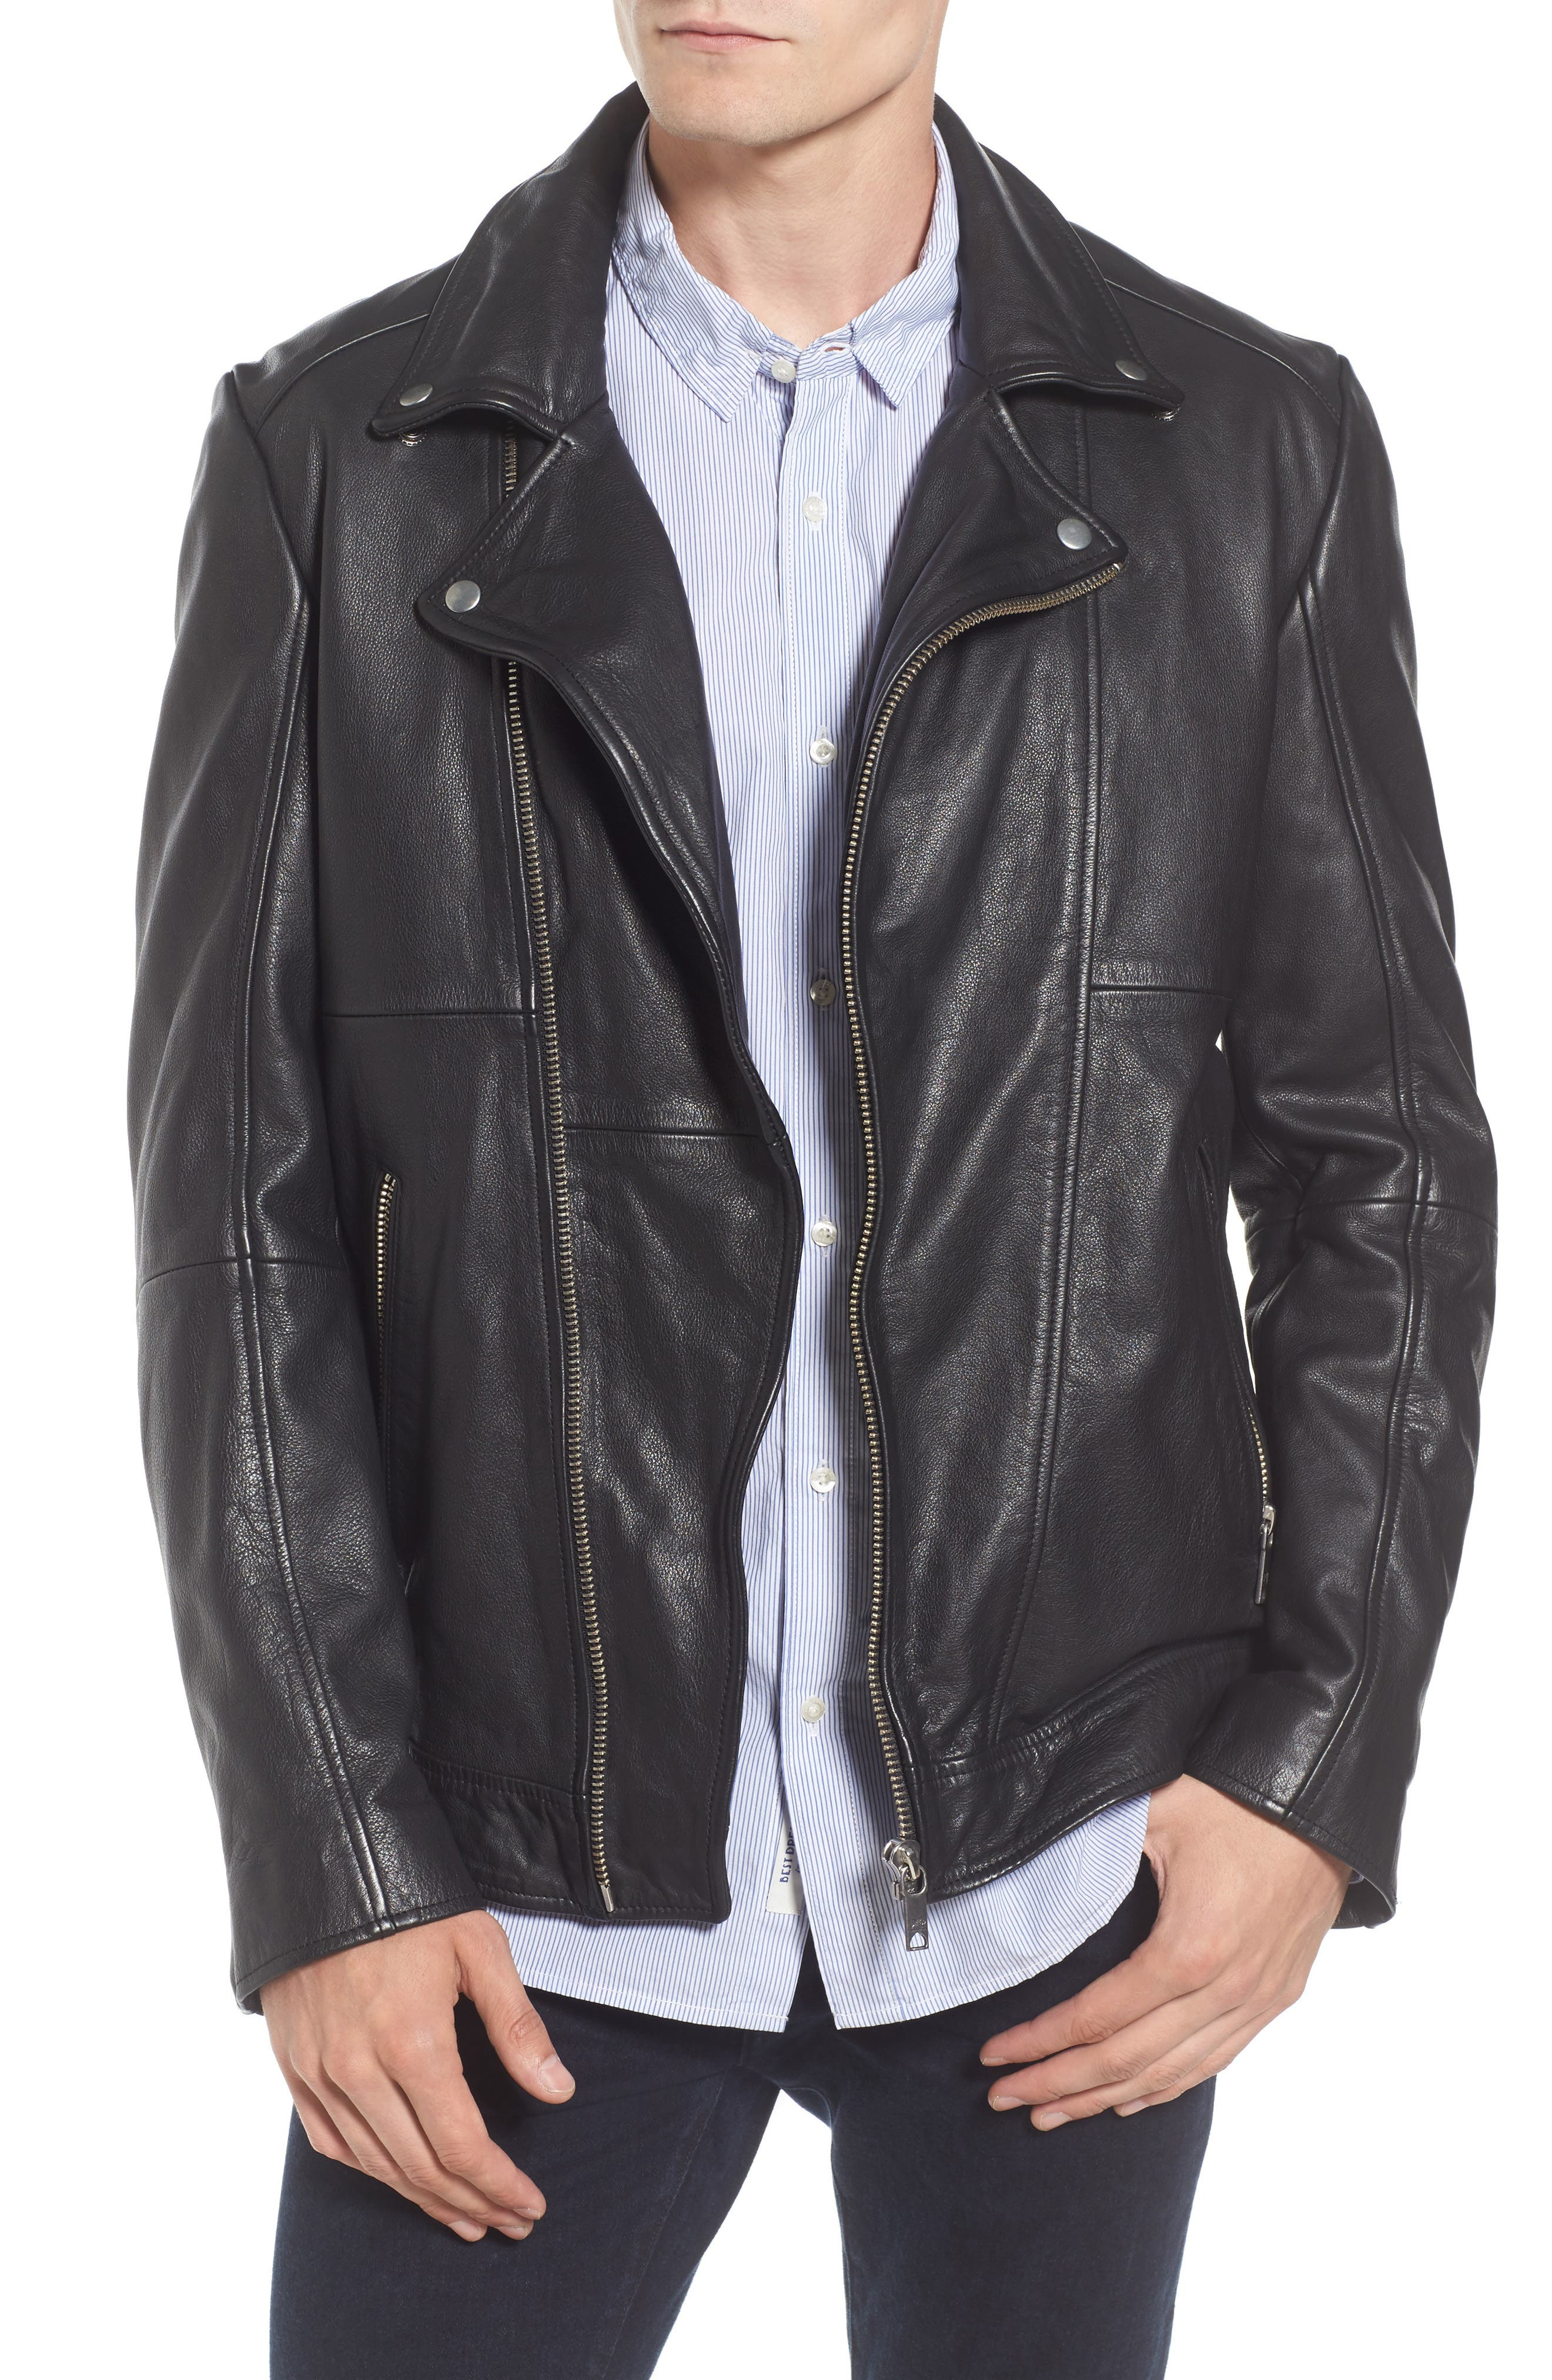 Scotch & Soda Classic Leather Jacket